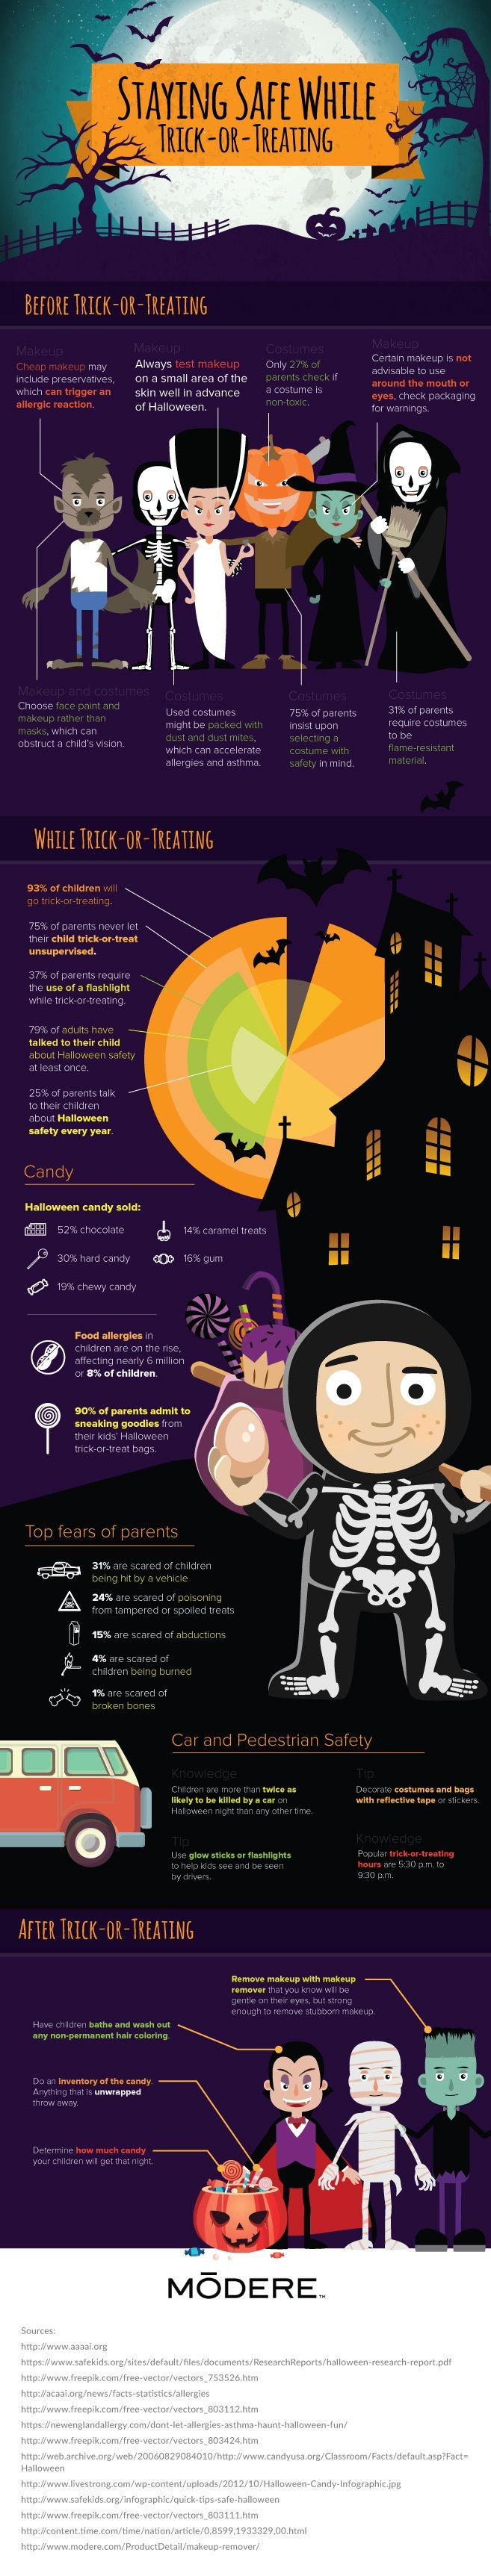 STAYING SAFE WHILE TRICK-OR-TREATING (INFOGRAPHIC) #Modere #LiveClean #Halloween